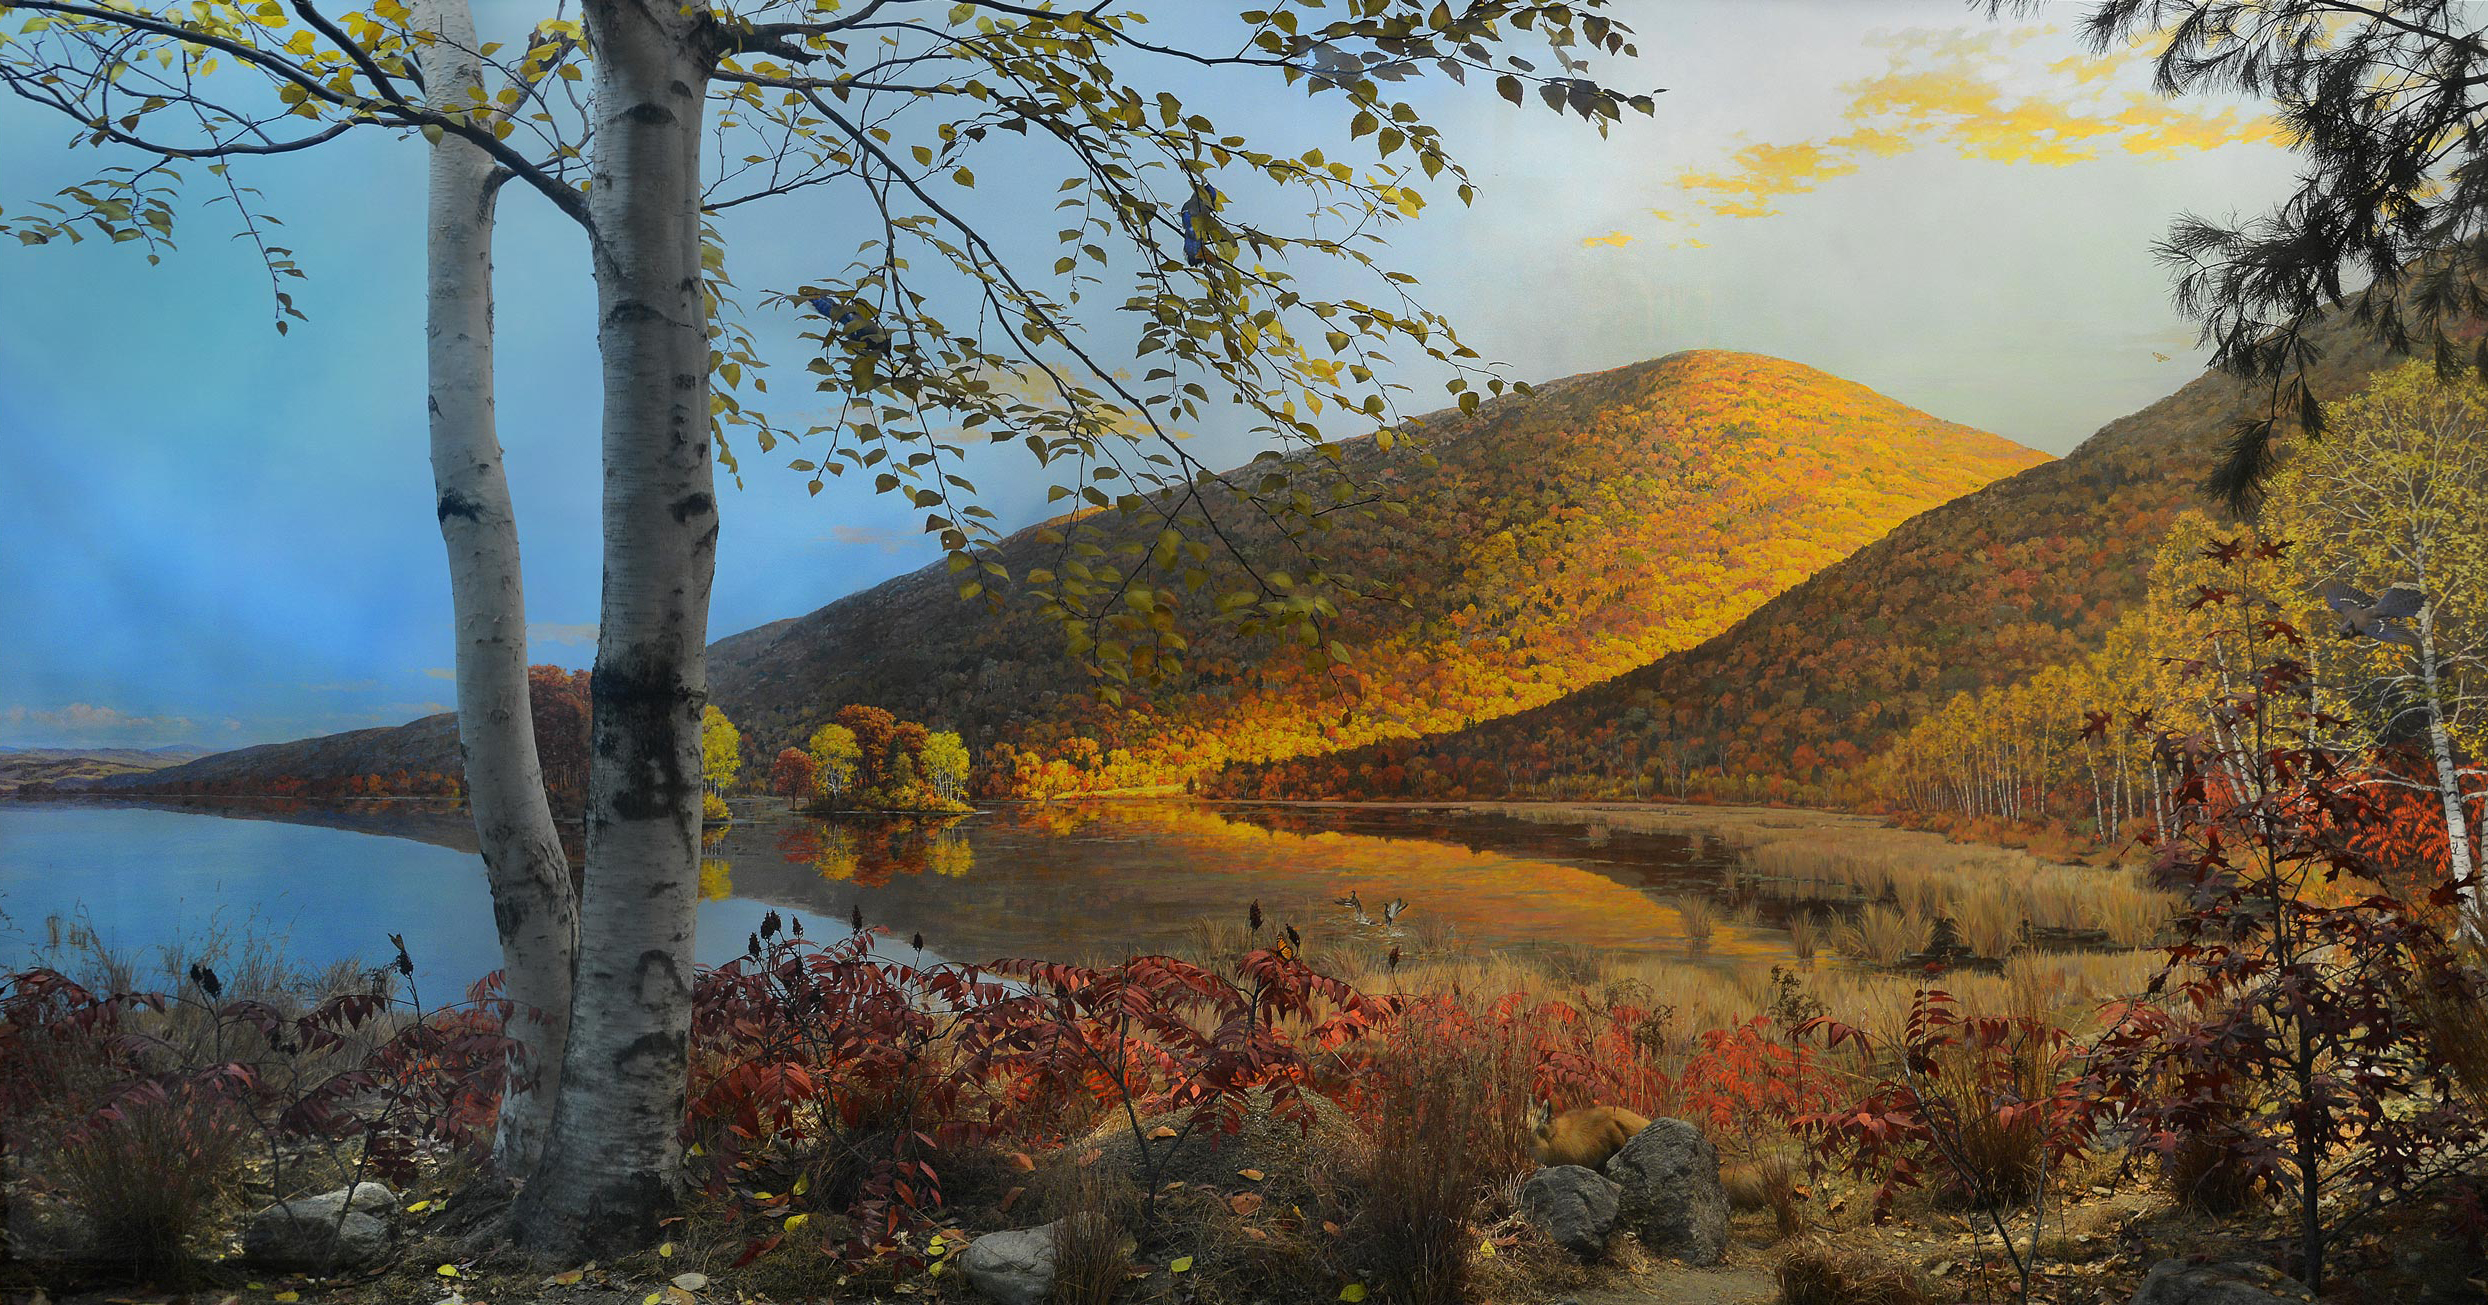 Diorama of Stissing Mountain in the fall, including trees, bushes and a lake.